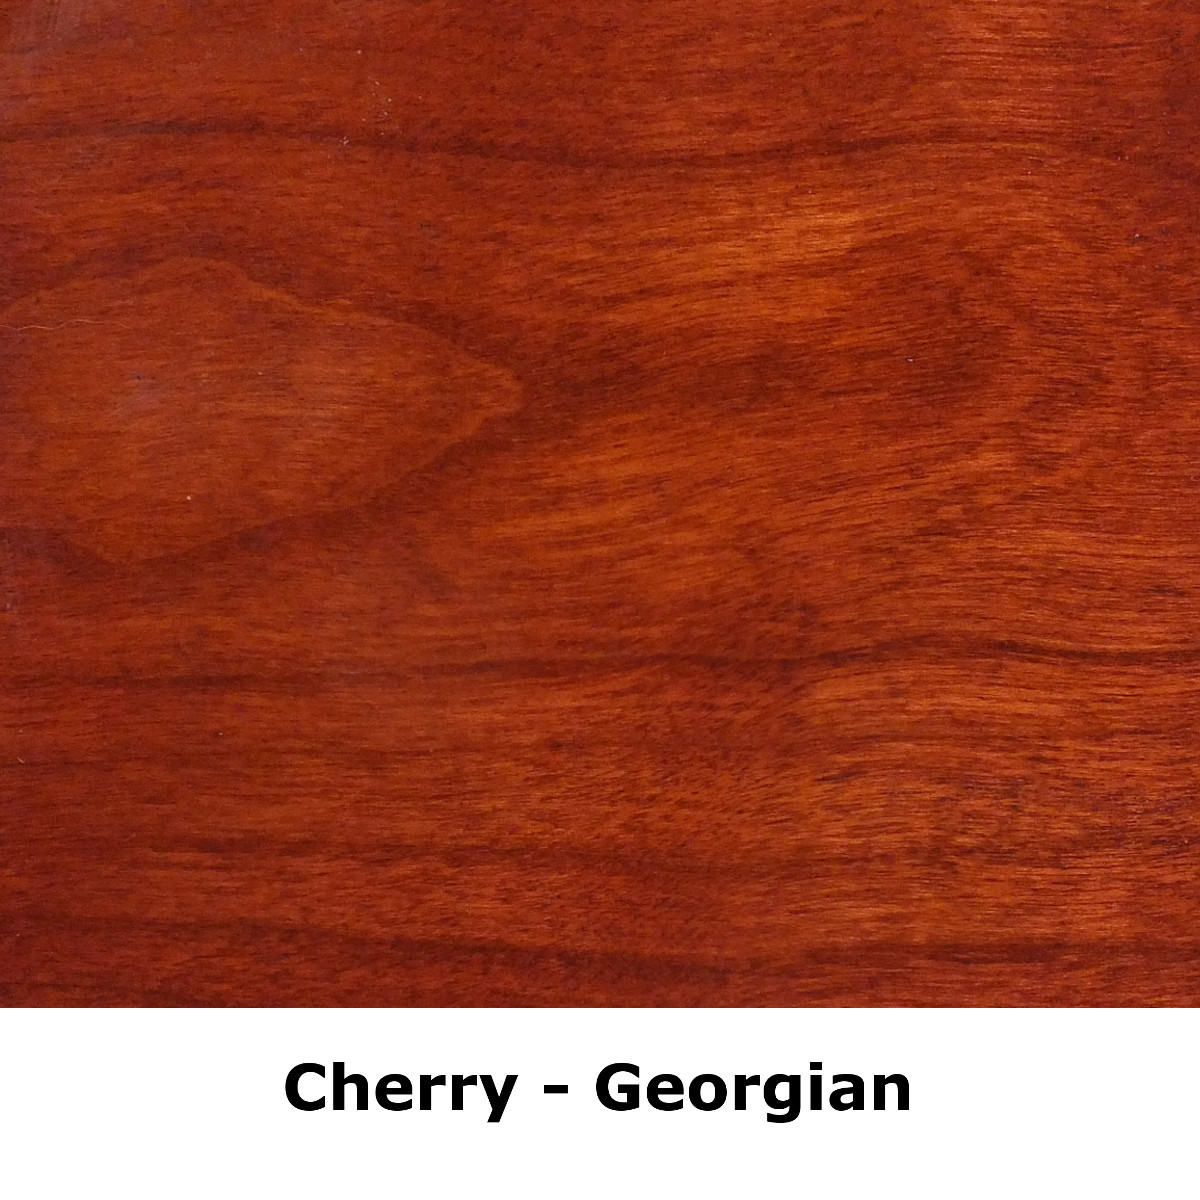 sq cherry gergian redo if mix darker trans.jpeg